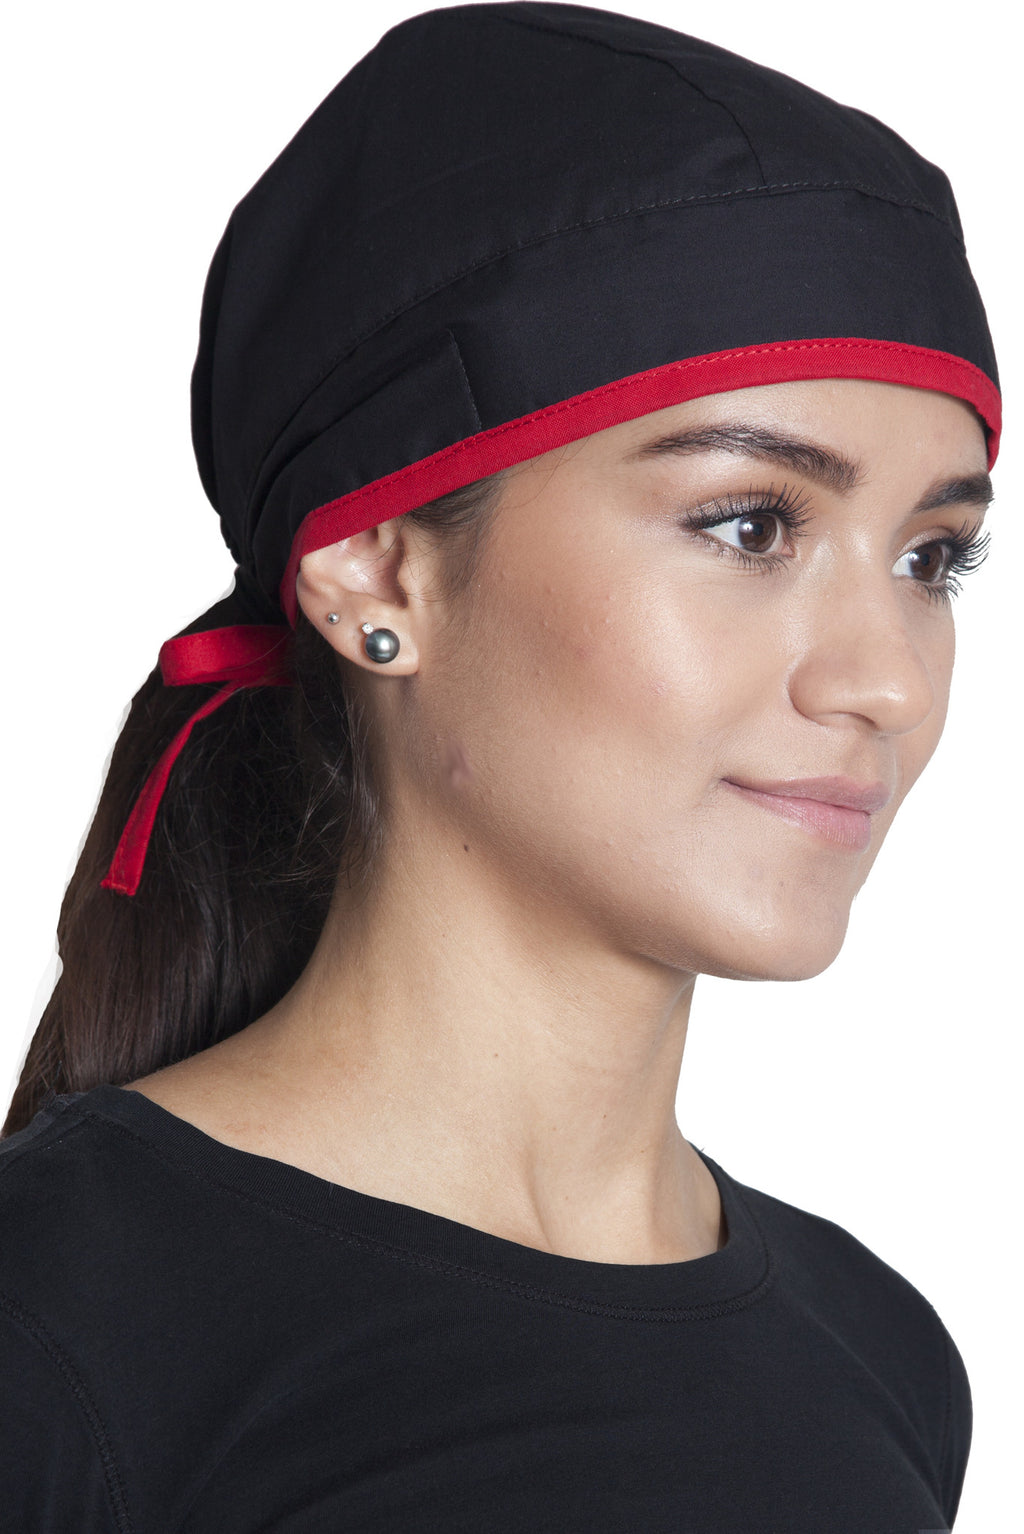 Fiumara Apparel Fitted Surgical Cap with Ties Main Black with Red Ties